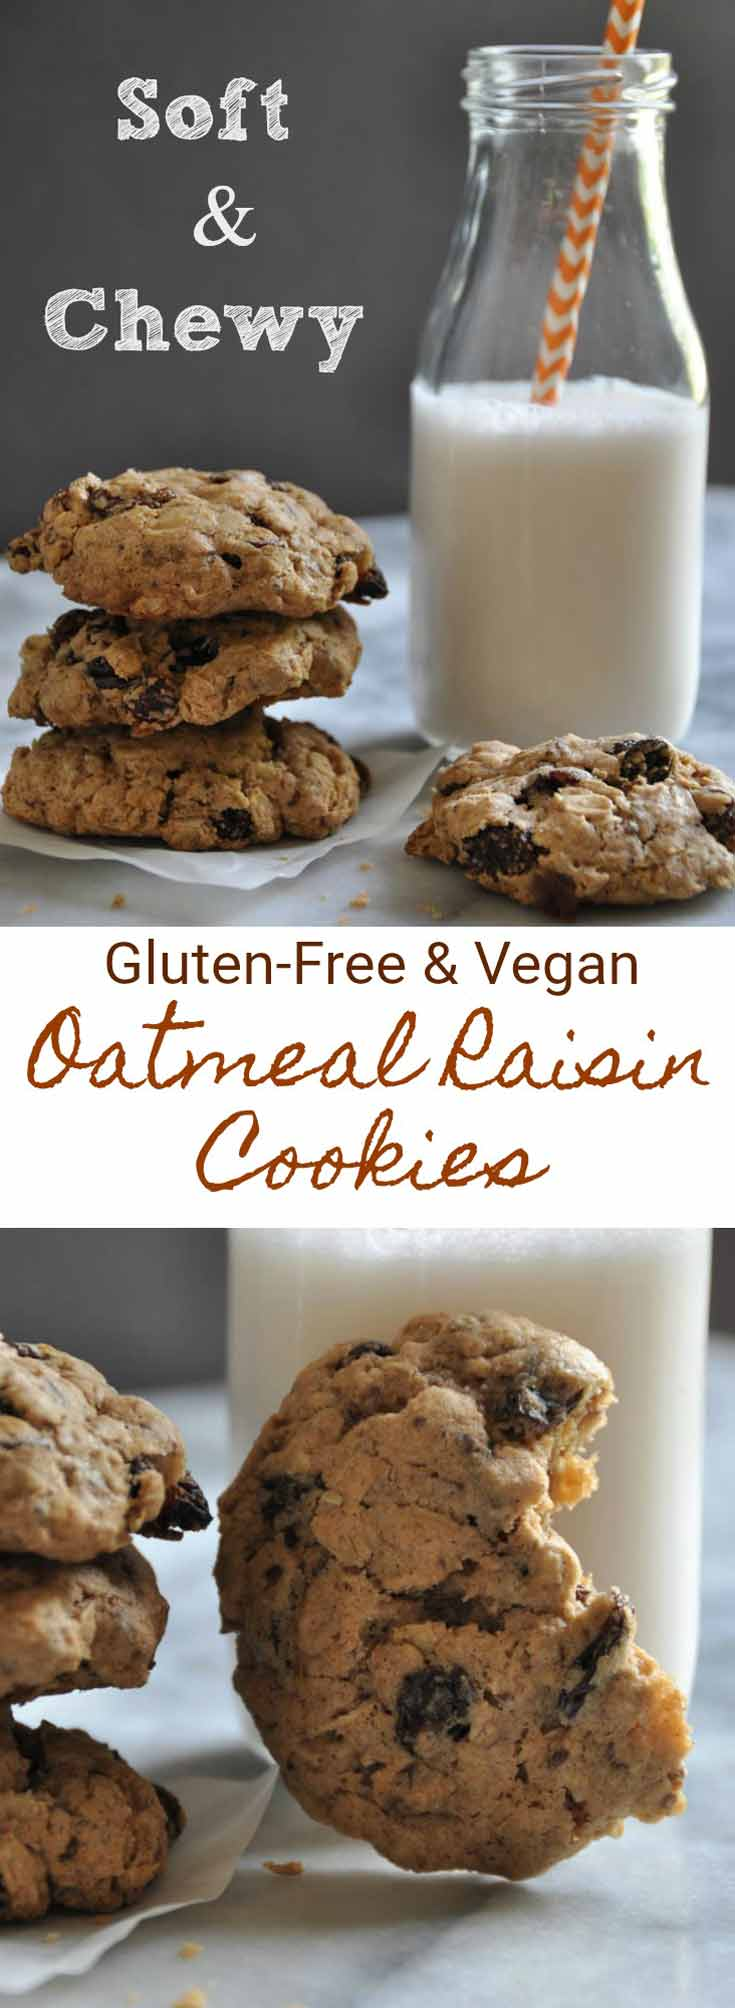 Soft and chewy classic oatmeal raisin cookies. Gluten-free, refined sugar-free, and vegan!